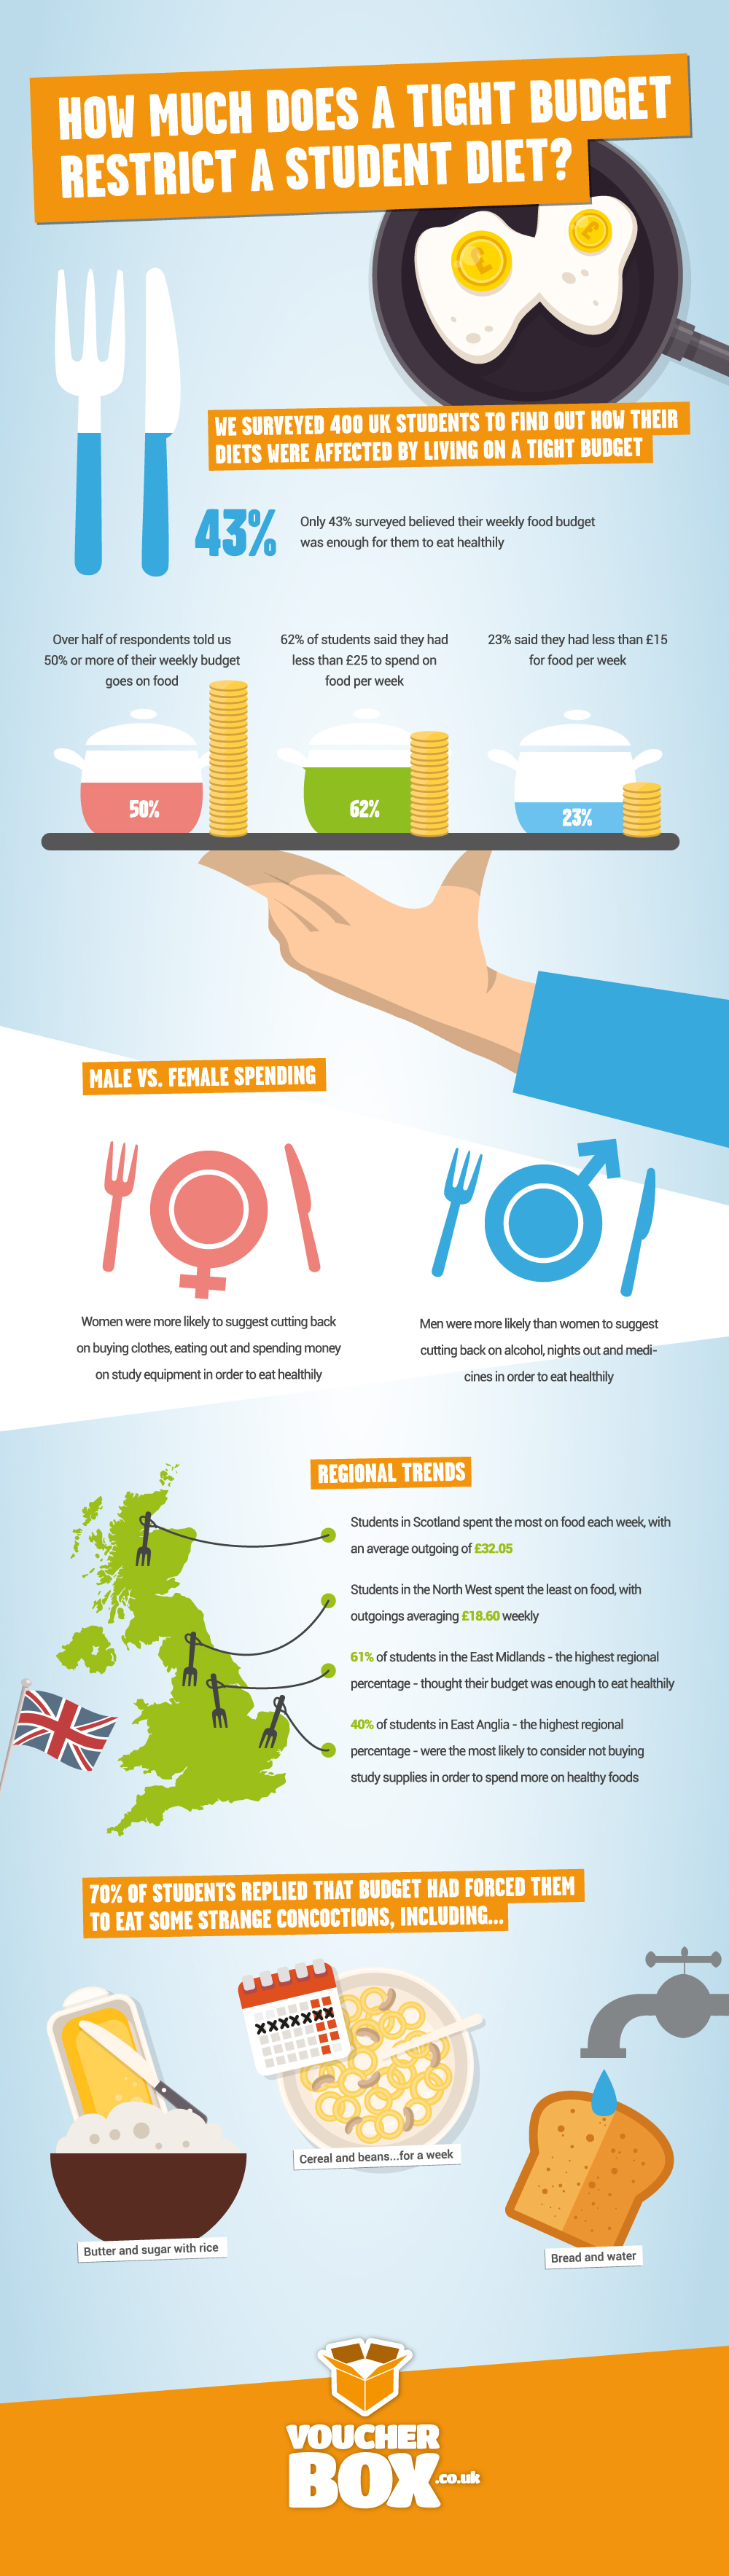 151009 infographic studentdiets r02 How Much Does a Tight Budget Restrict a Student Diet?